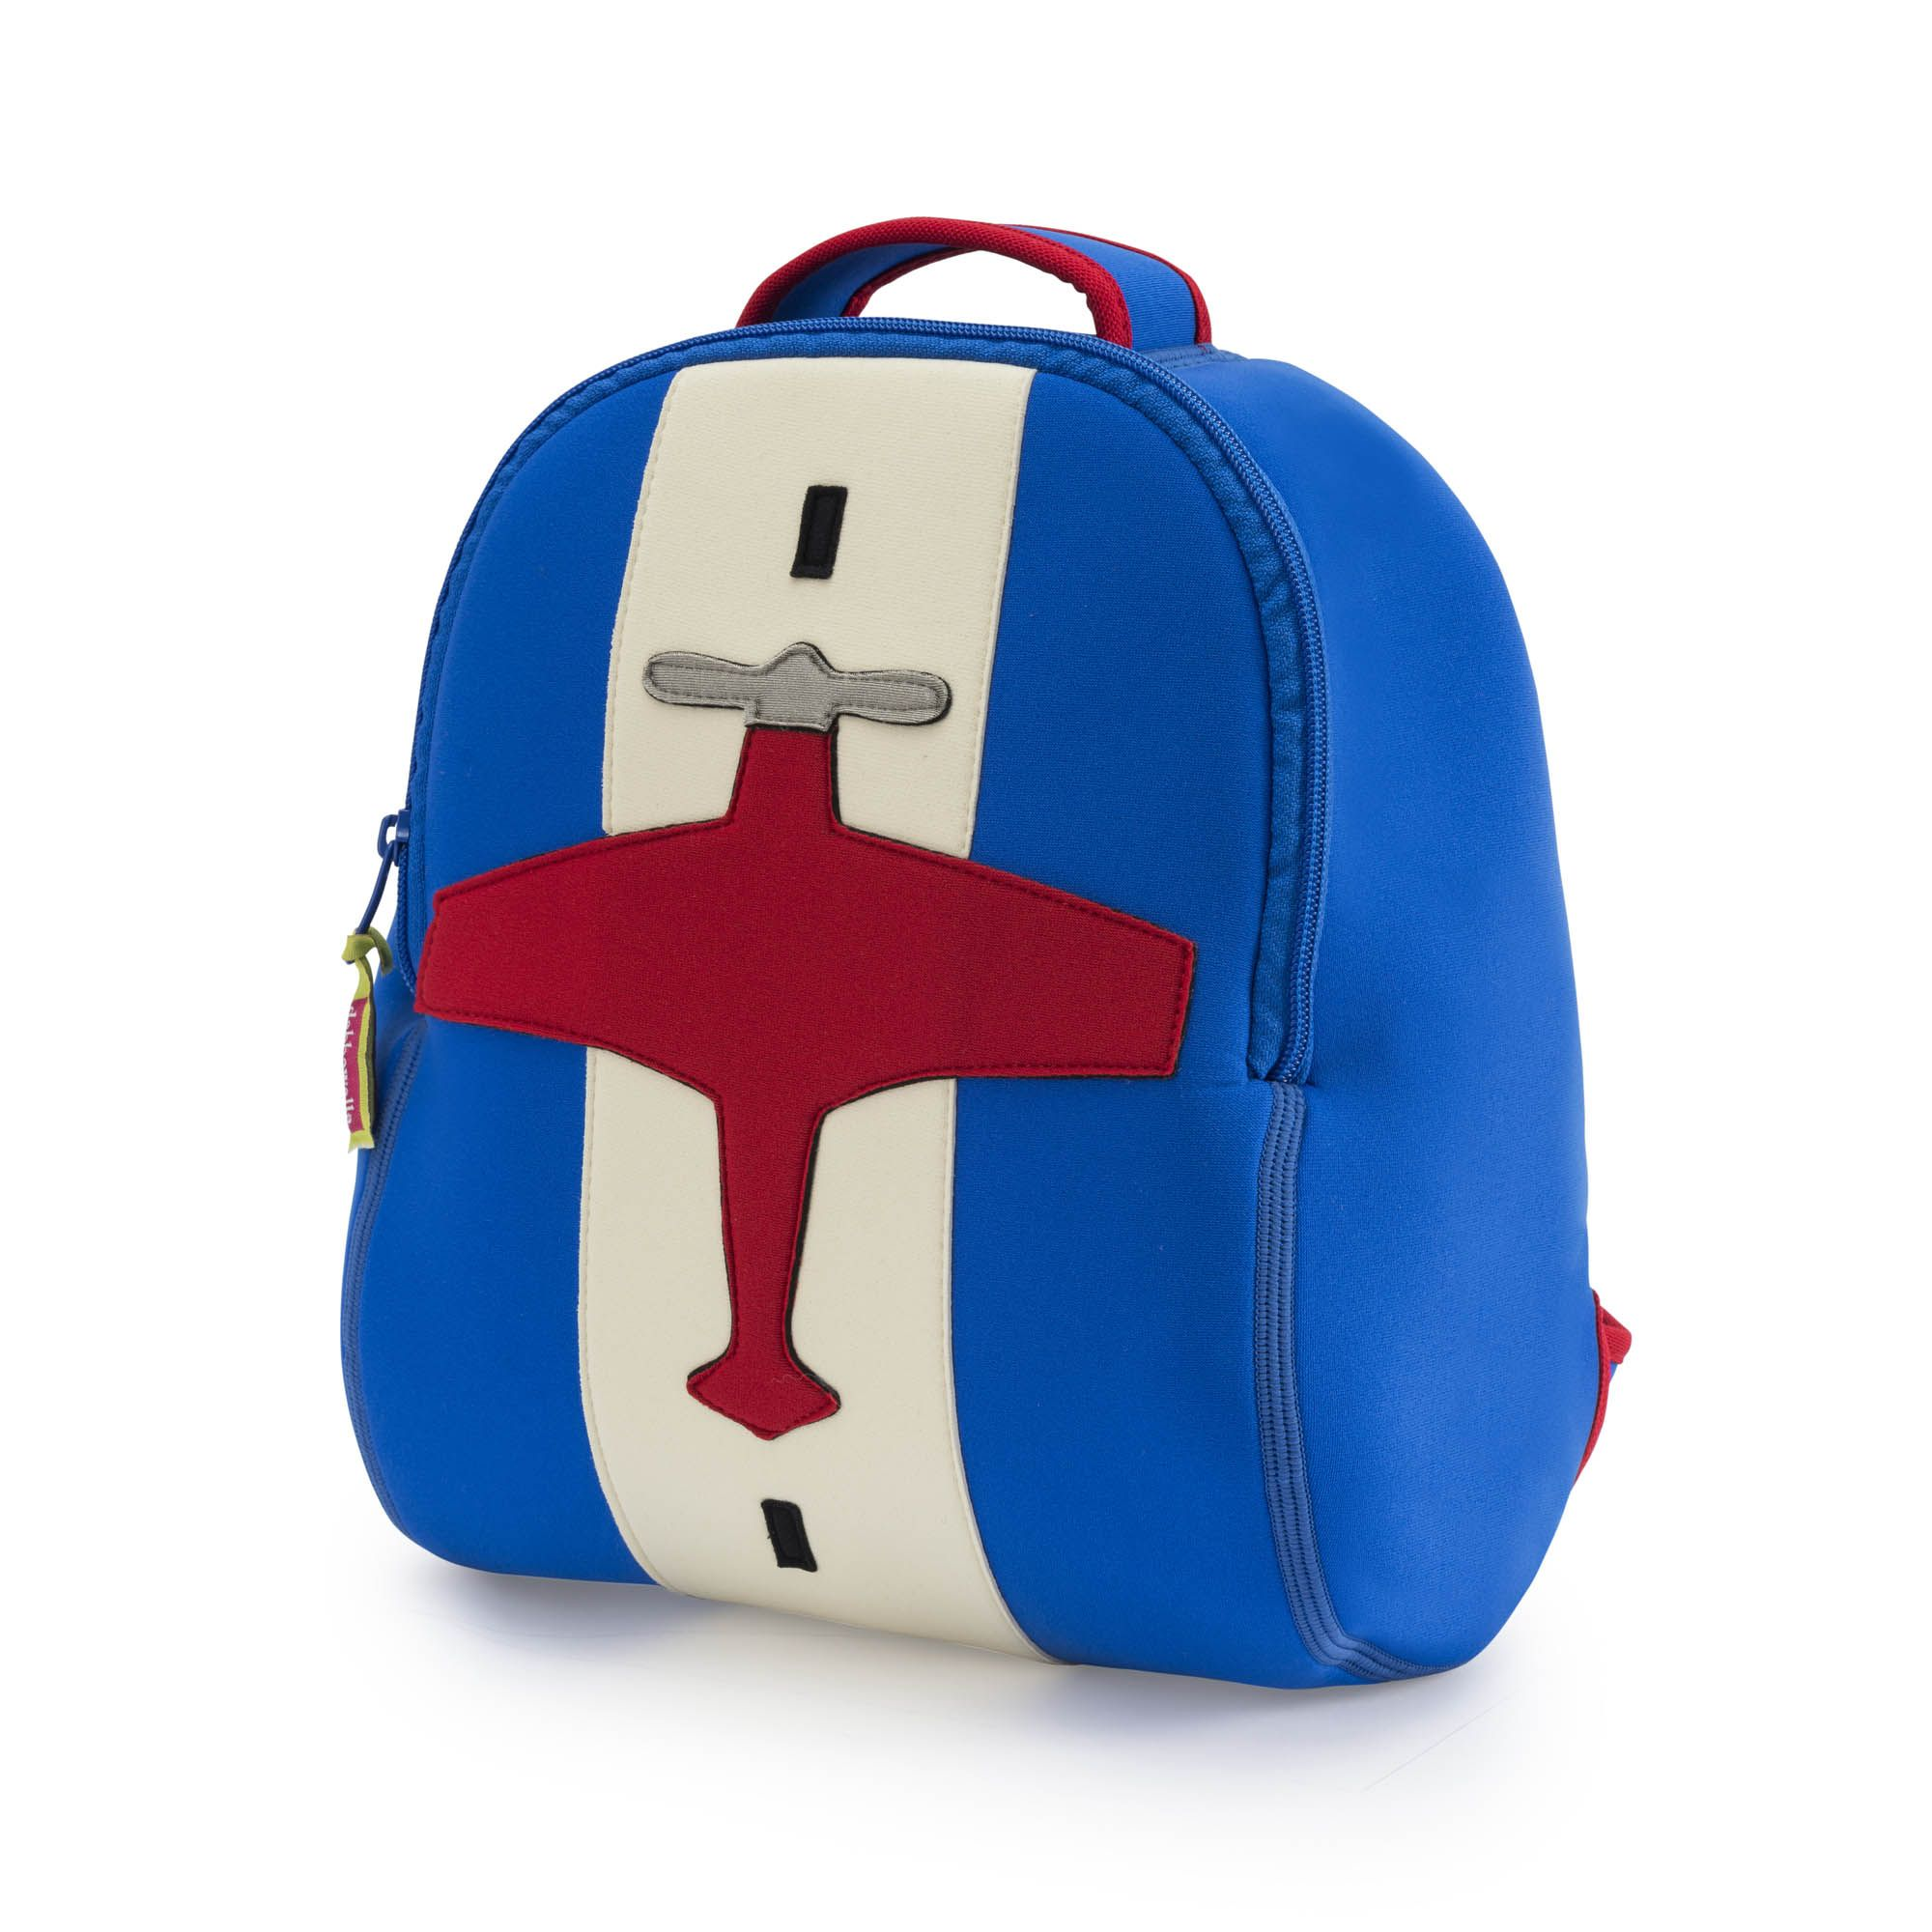 Aim for the clouds with this insulated and machine washable backpack  designed to stash all your little pilots gear and toys while flying off to  preschool. 729c78f95ff57